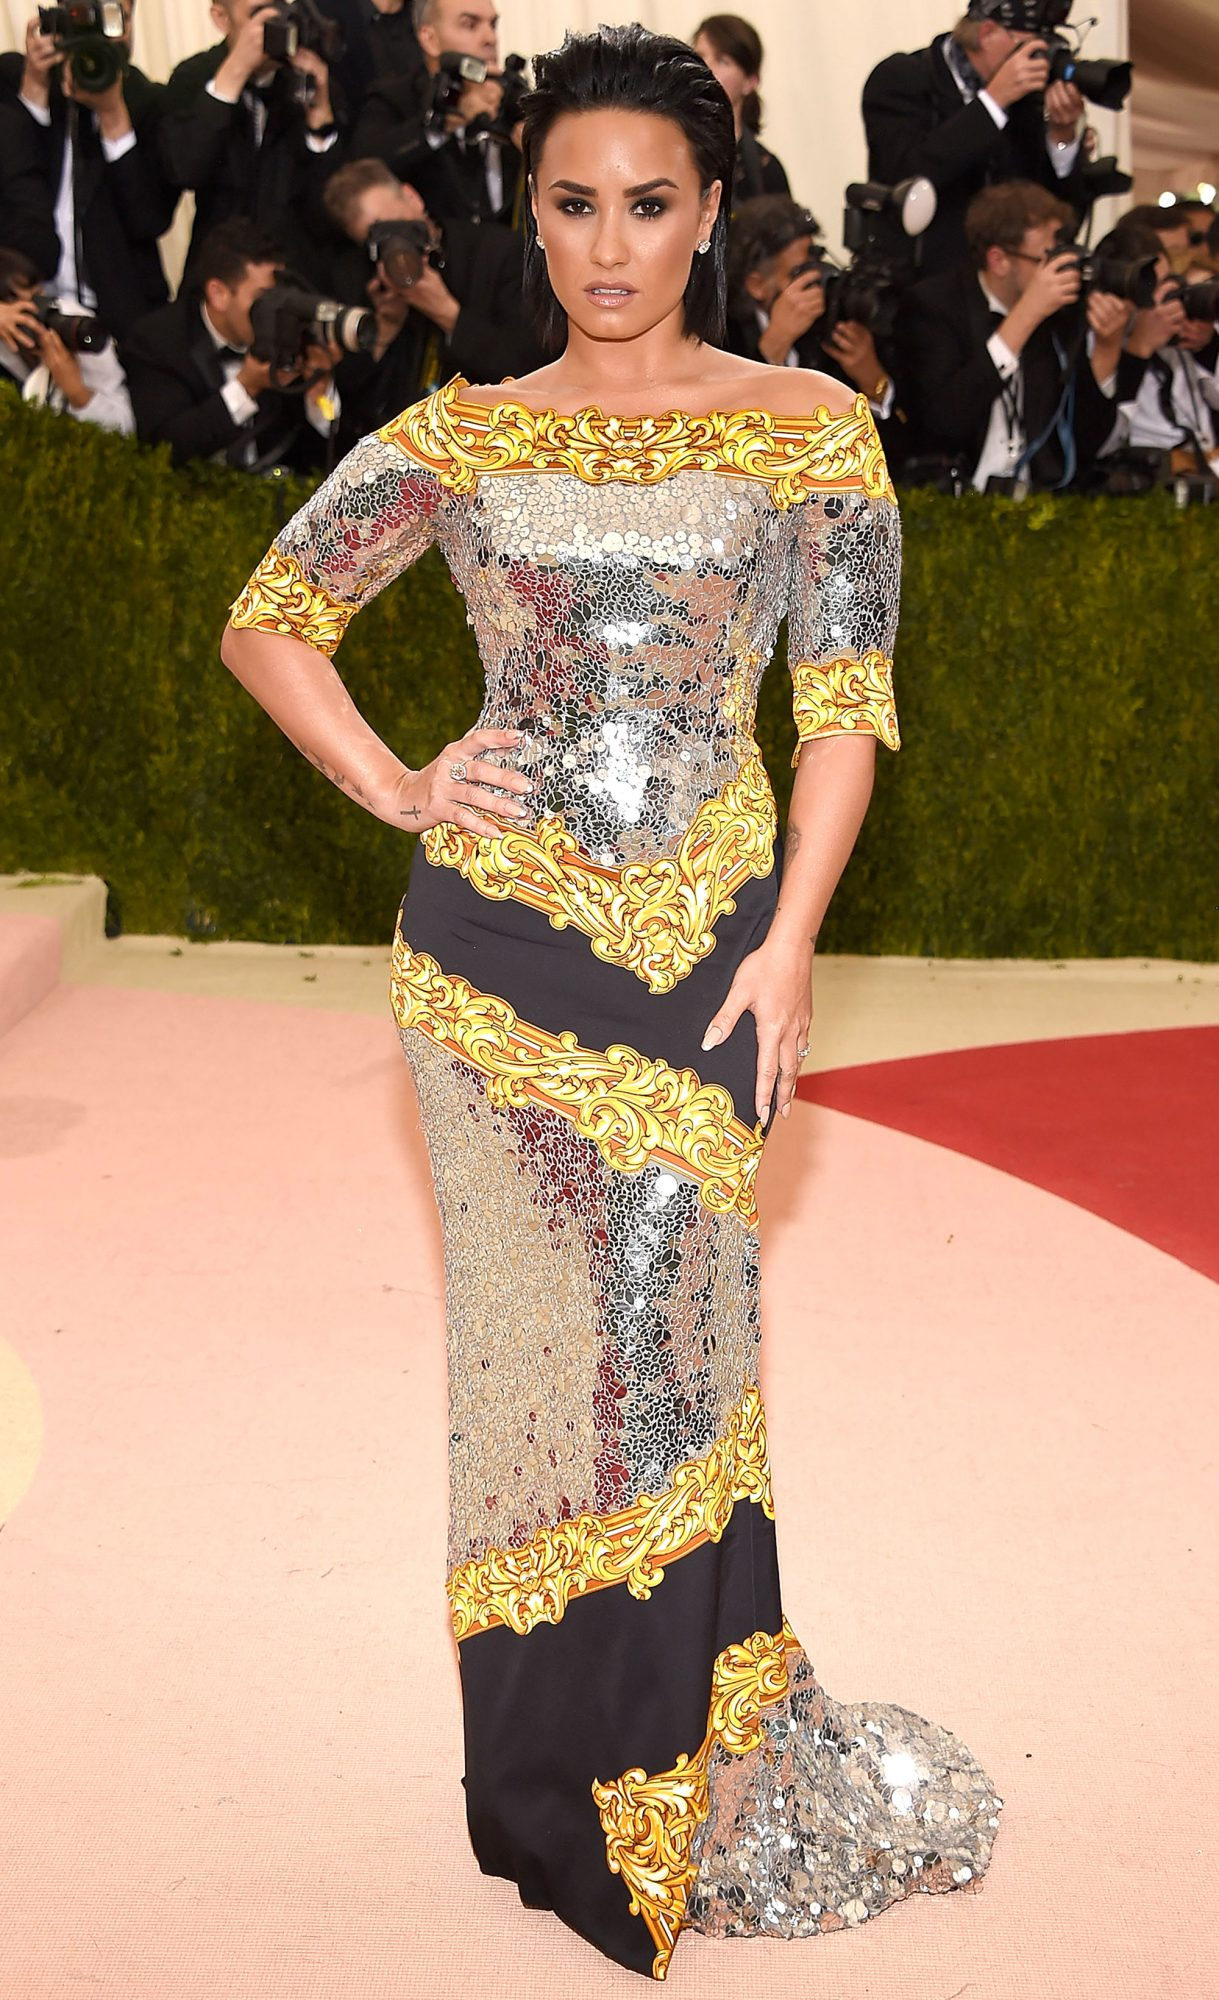 Celebrities Wearing Bling Demi Lovato Wears Her Long Black Gold and Silver Sequin Gown with a Sequin Train